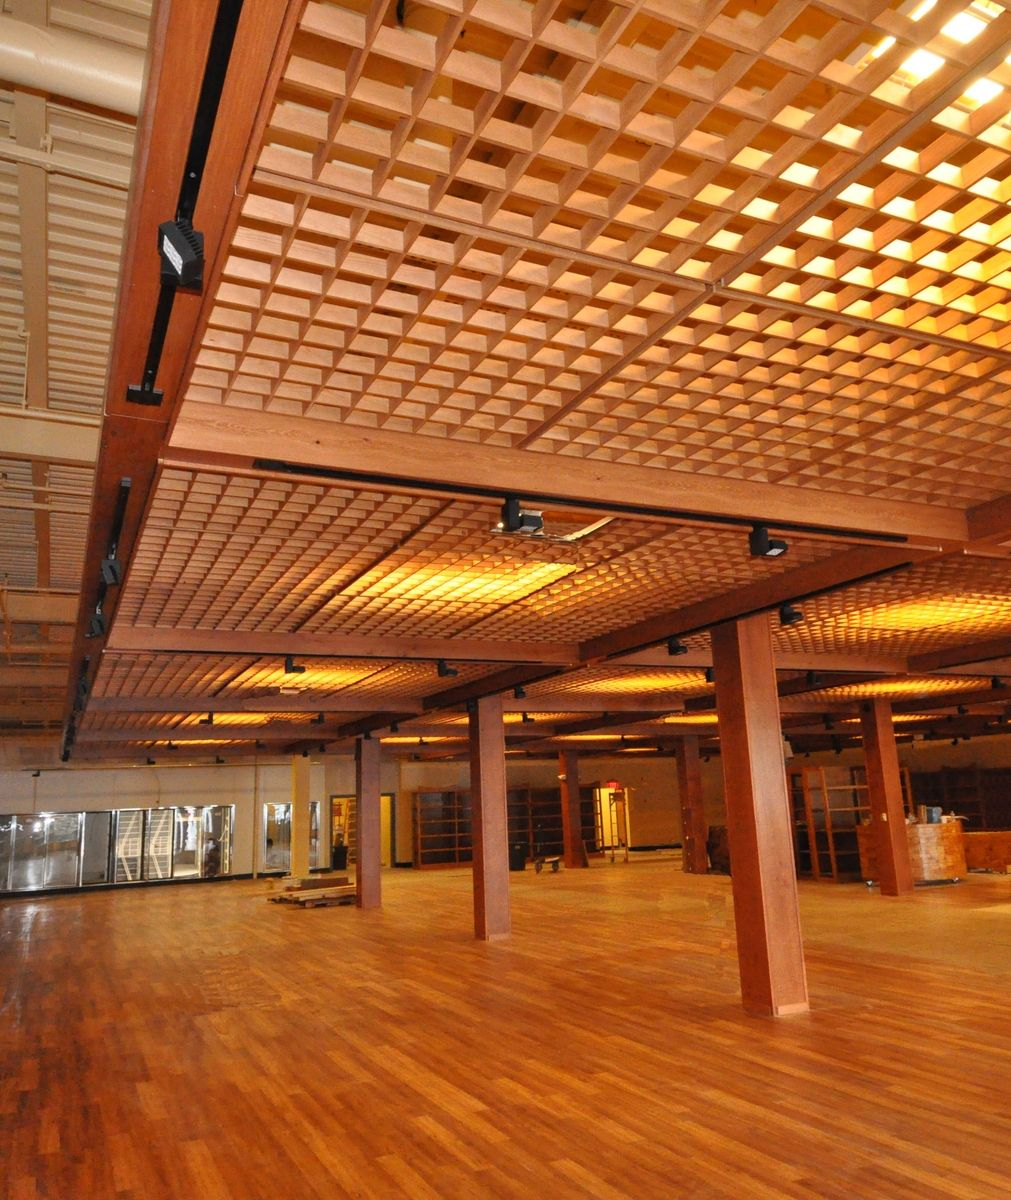 Ceiling Timber: Wood Ceiling Grid